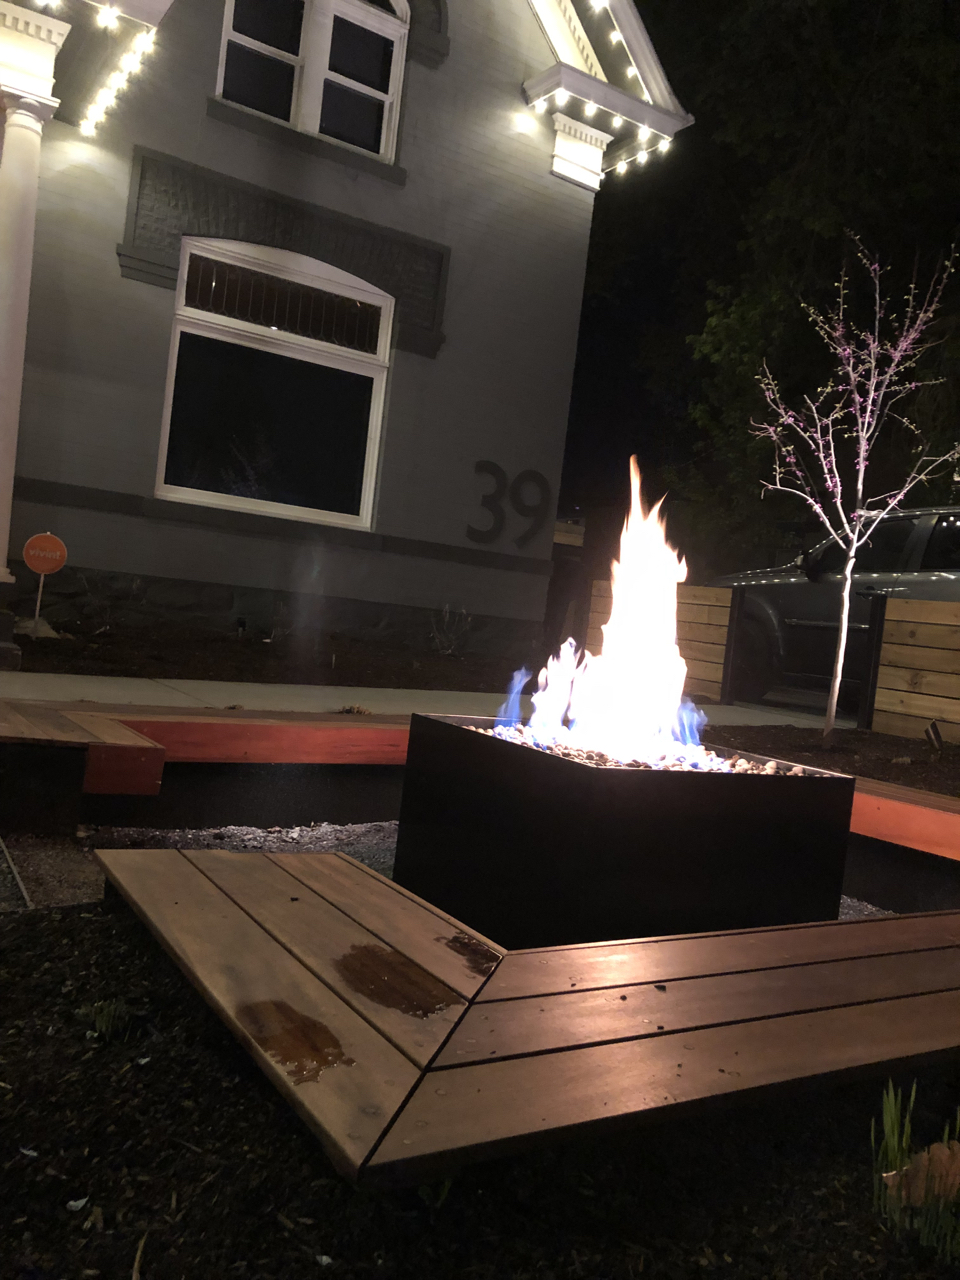 We got the fire pit up and running along with the lights on the house.